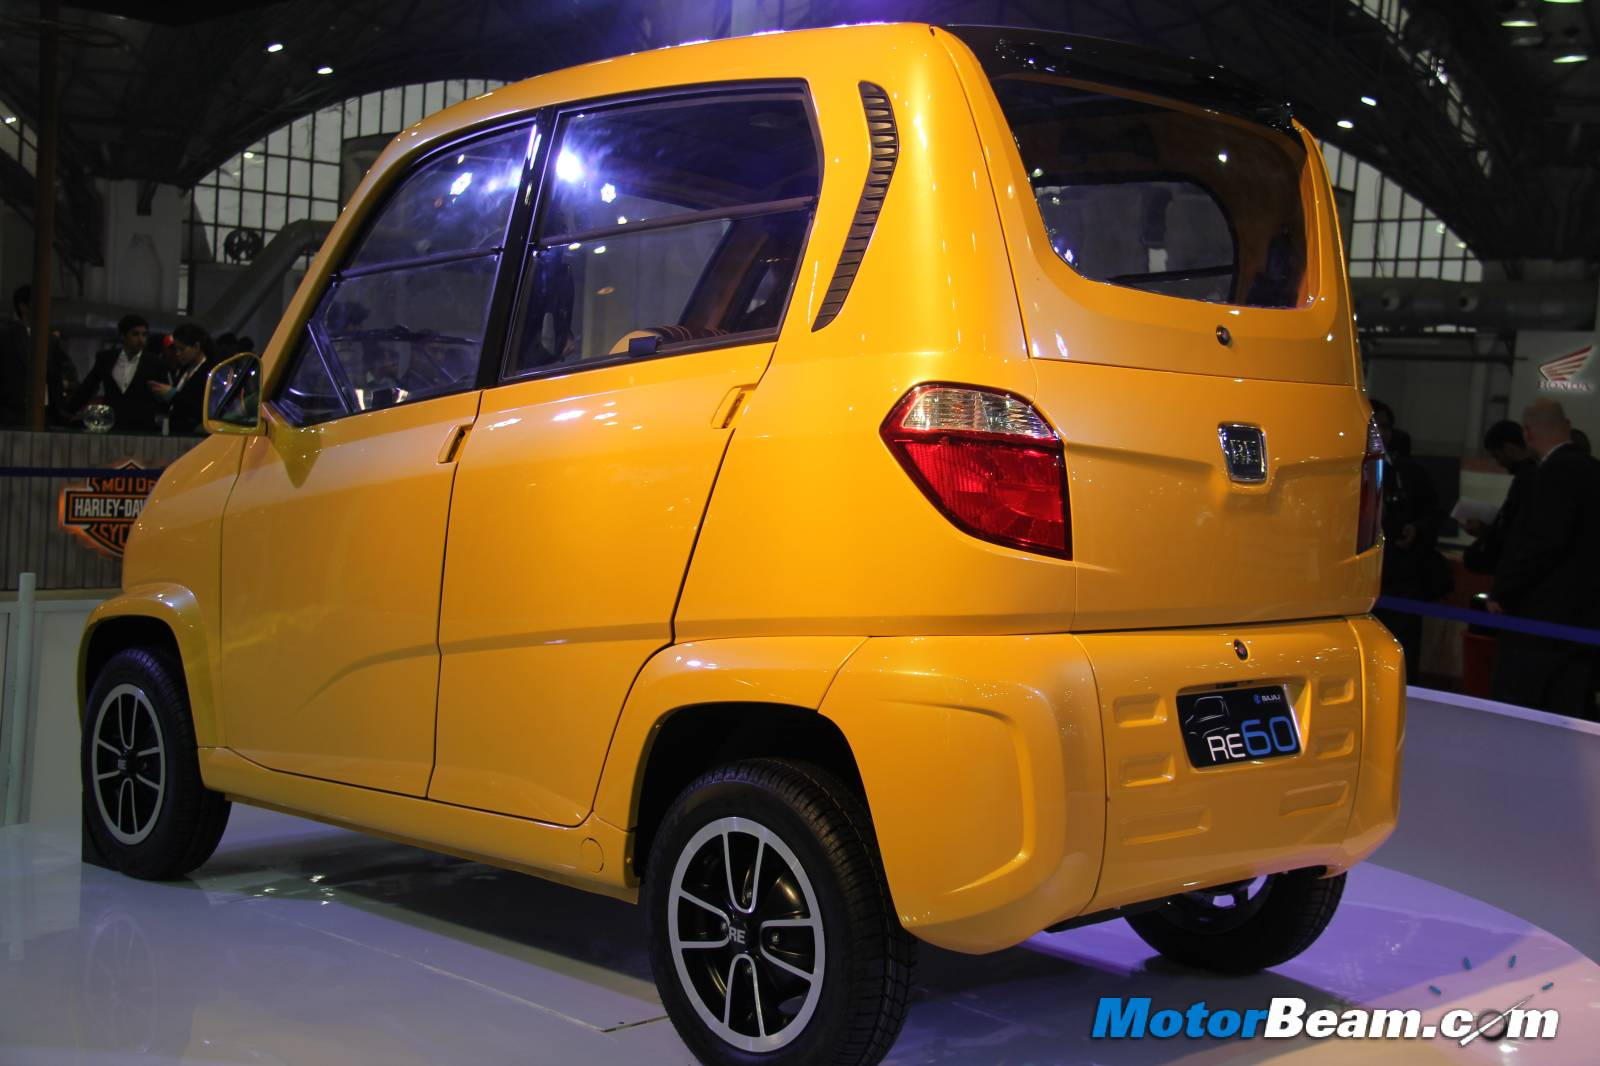 Bajaj RE60 2012 Auto Expo